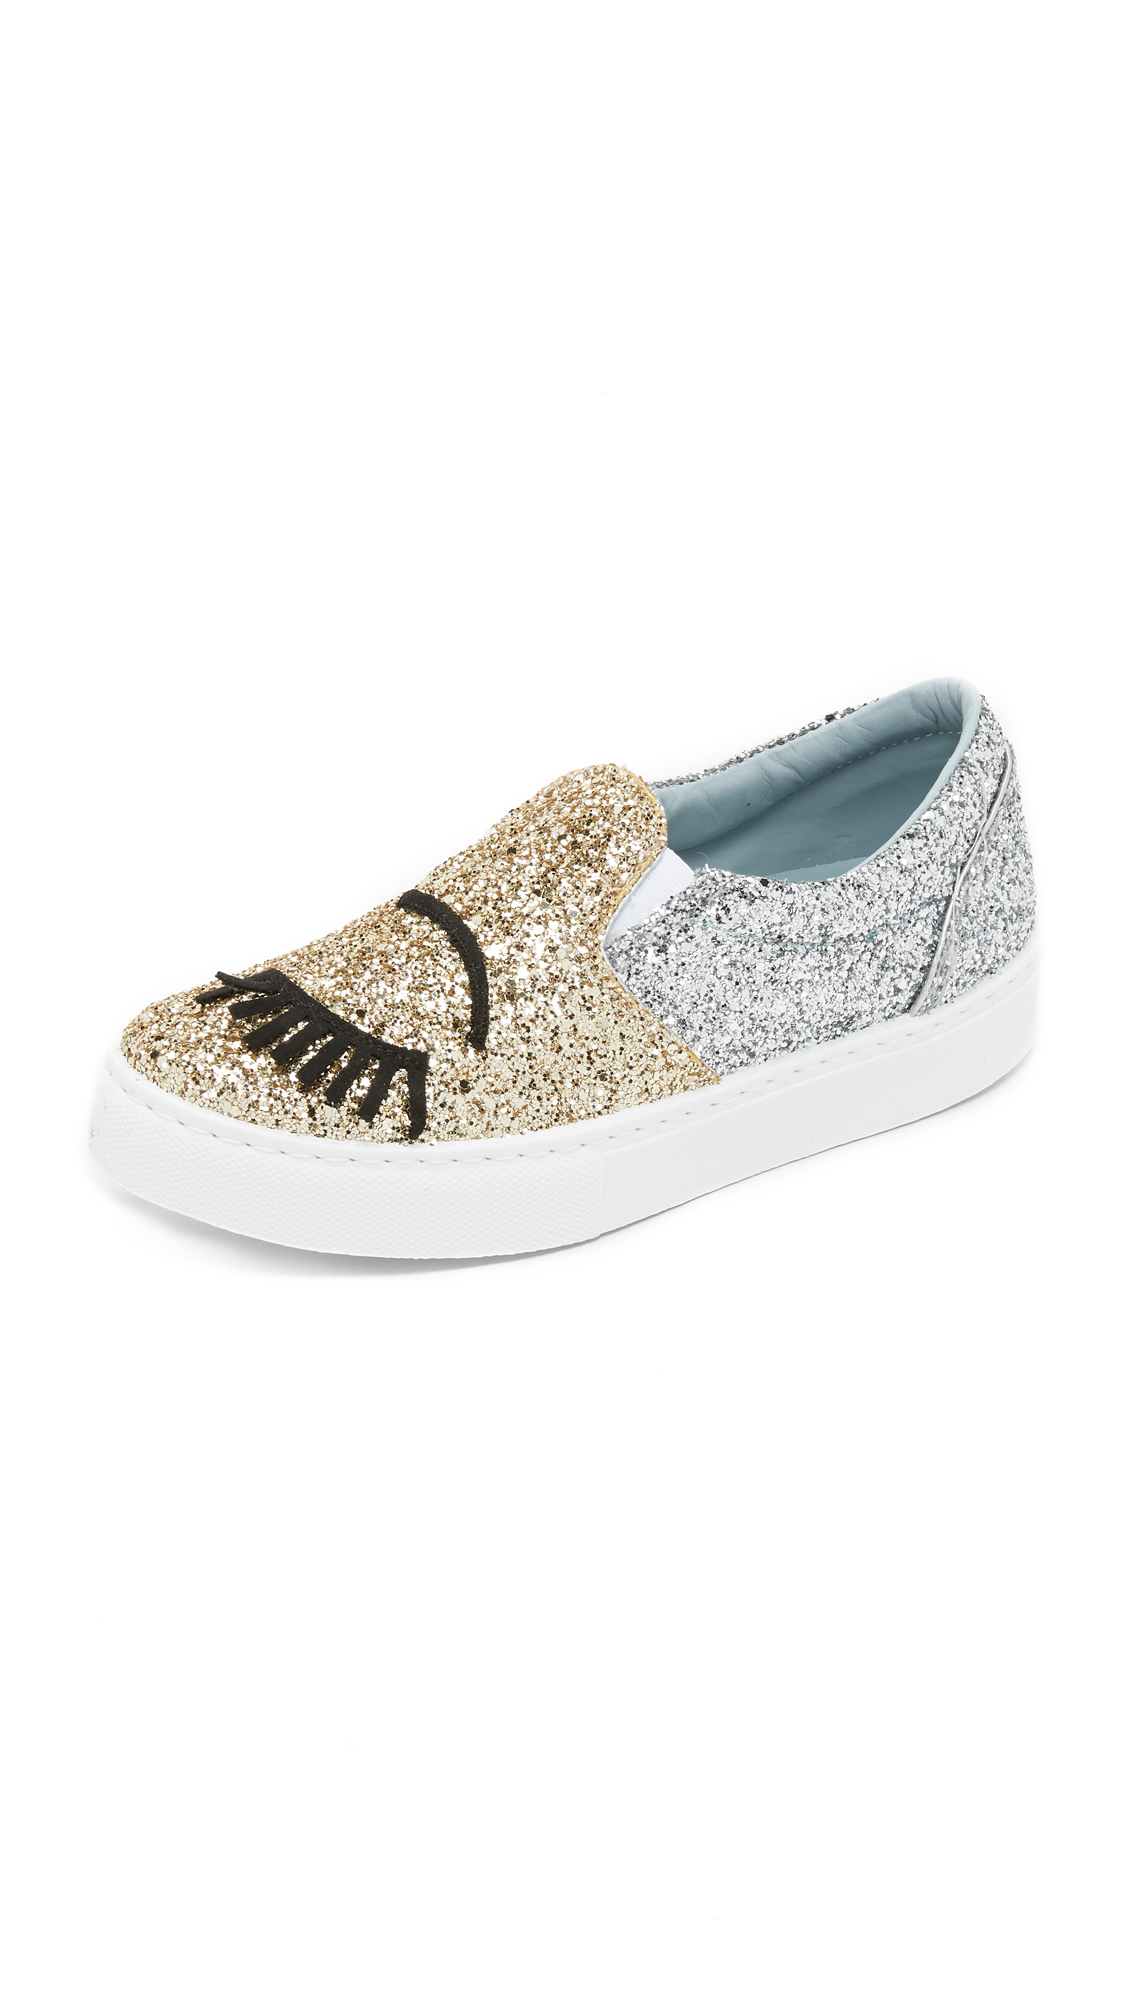 sequin embroidered sneakers - Metallic Chiara Ferragni Clearance Footlocker Finishline Cheap Footlocker Pictures Free Shipping Largest Supplier 2018 Unisex Cheap Online ZbWrW